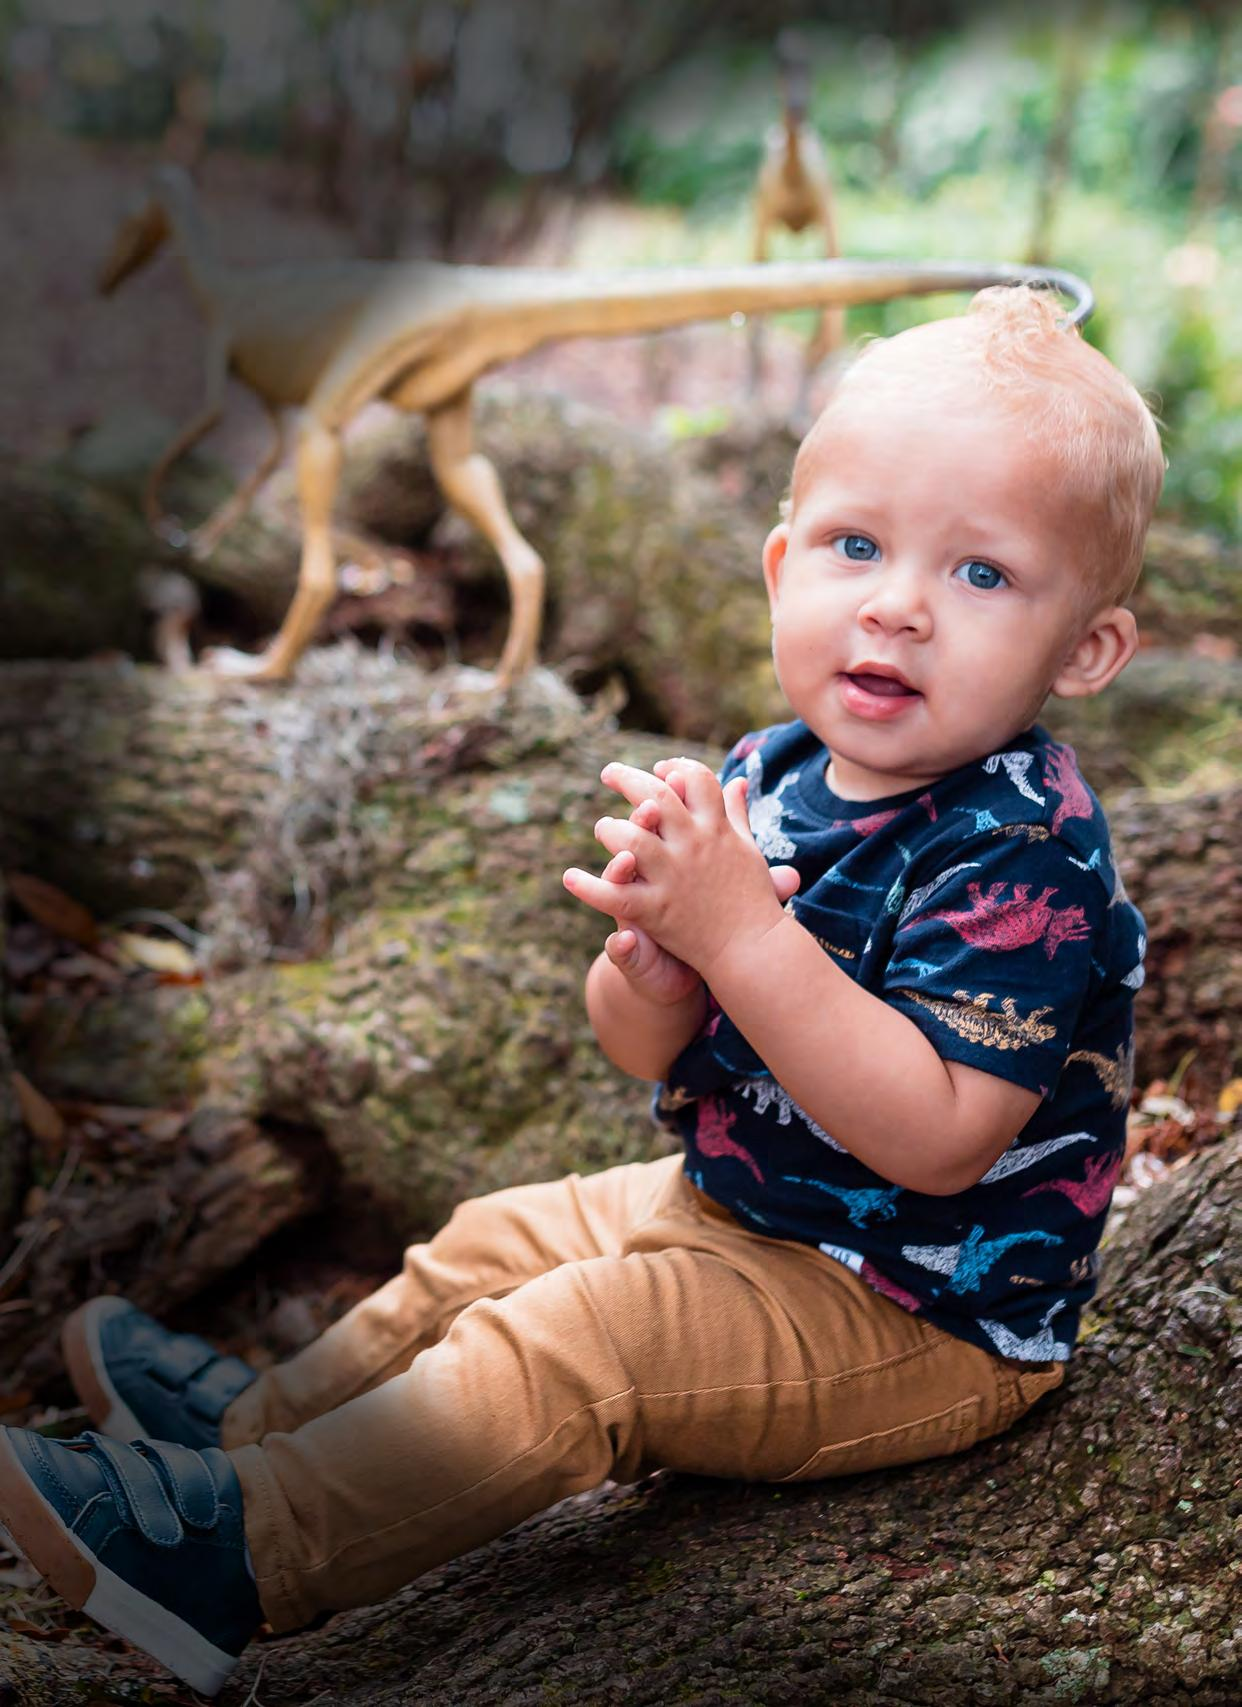 Page 16 of ADVENTHEALTH FOR WOMEN CUTEST BABY CONTEST